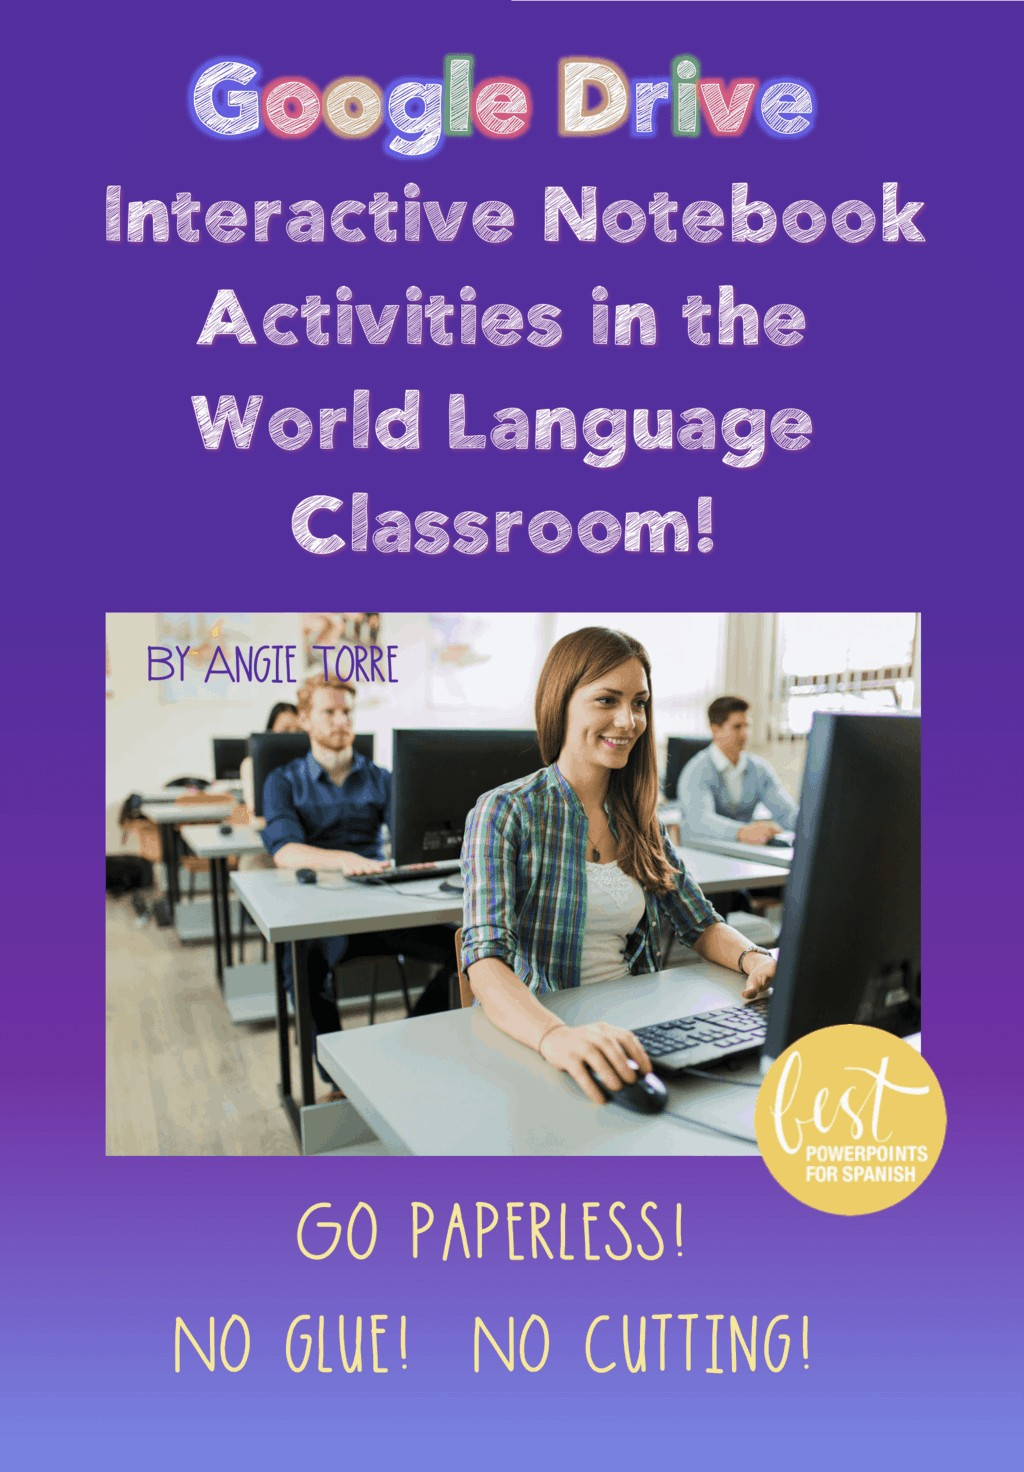 Google Drive Activities in the World Language Classroom